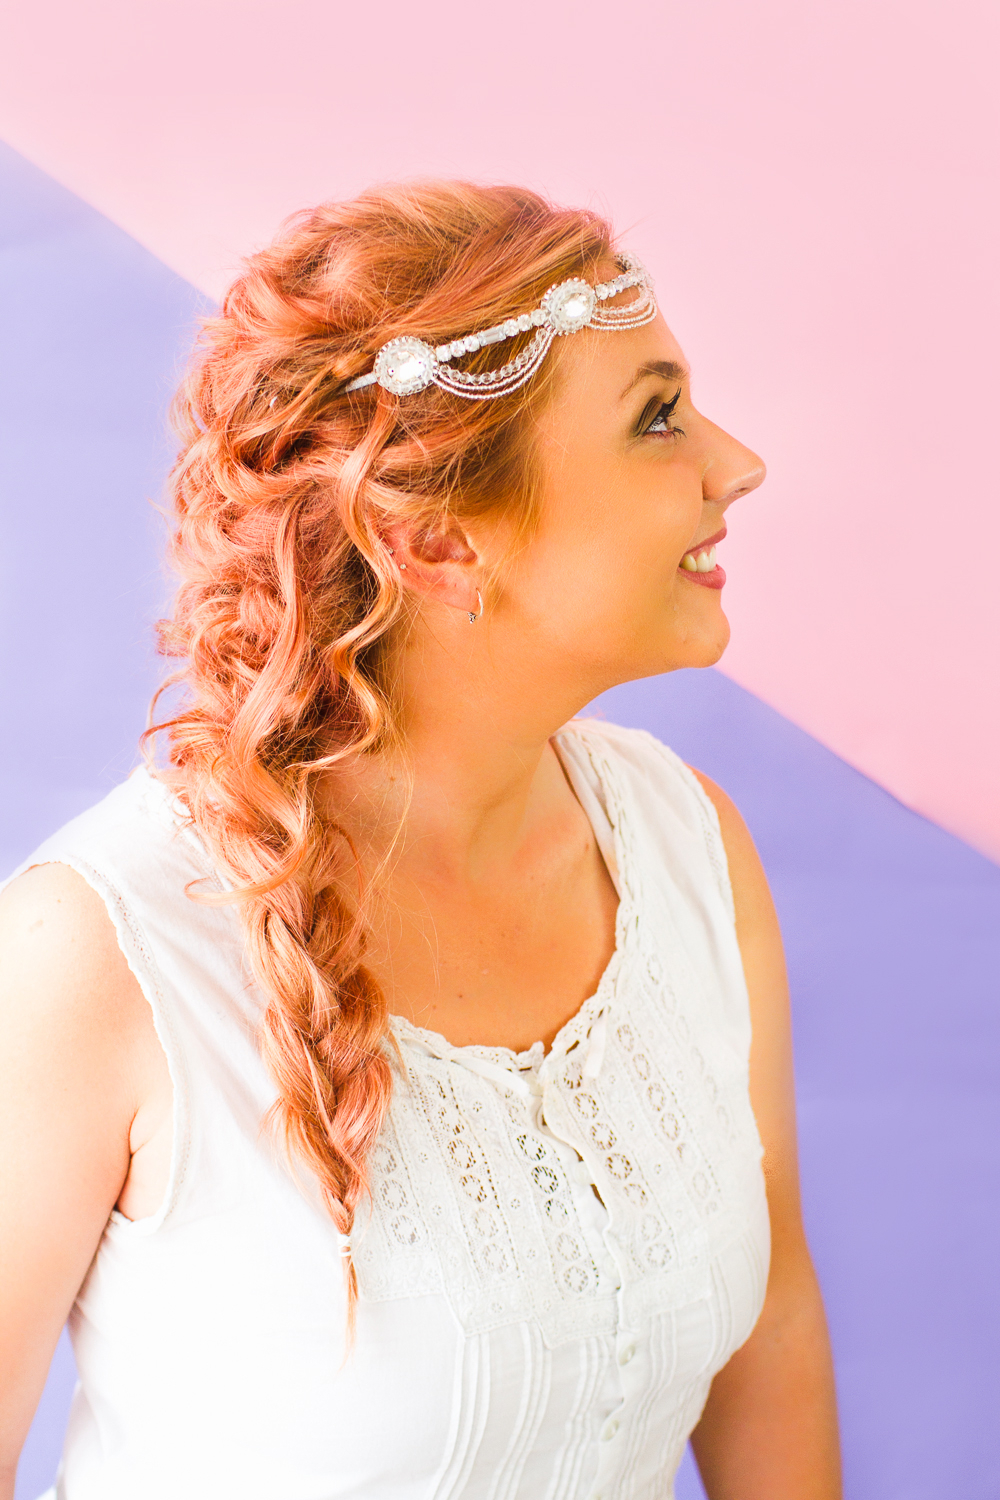 How To Wear Wedding Headband With Hairstyle Wedding Headpieces In Well Known Crown Braid, Bouffant And Headpiece Bridal Hairstyles (View 5 of 20)